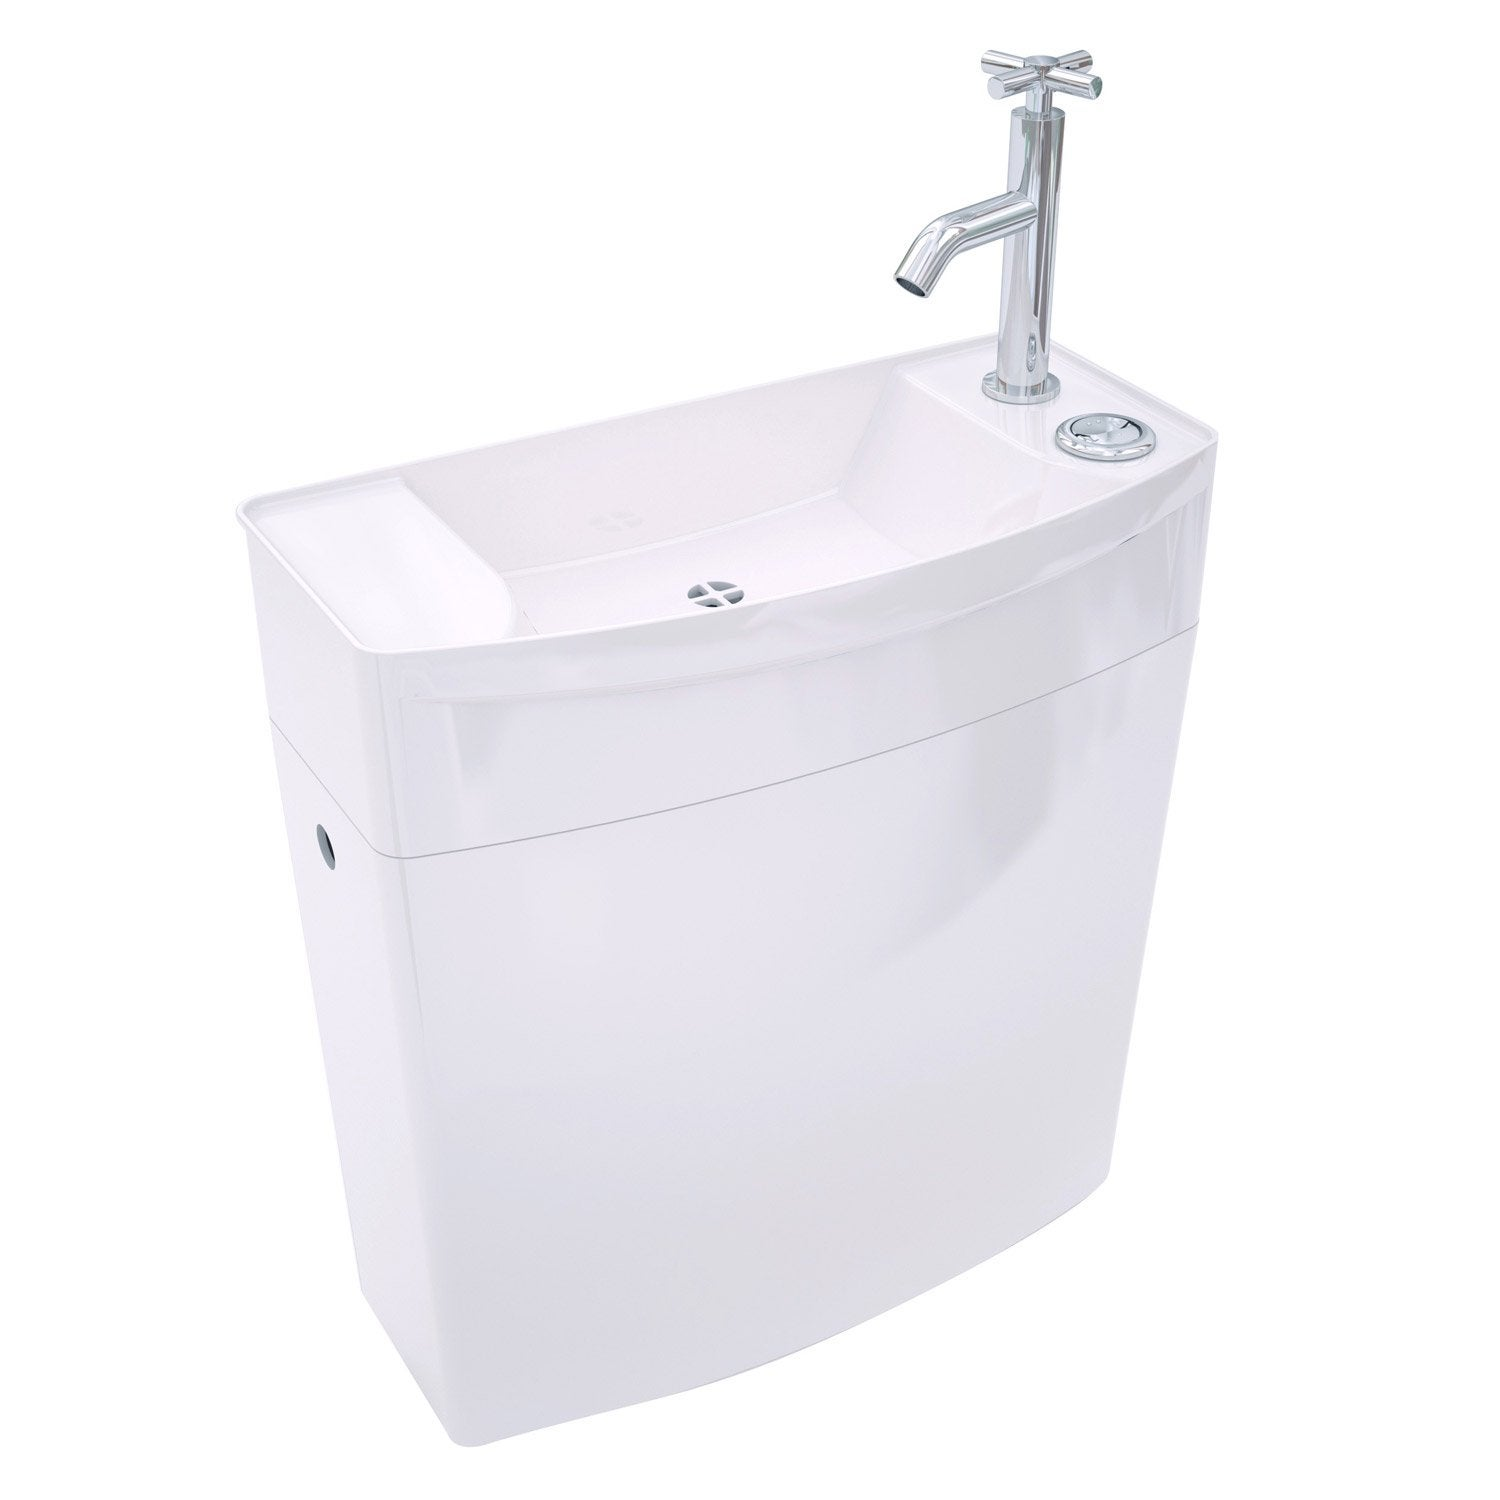 R servoir bas wc wirquin leroy merlin - Amenagement wc avec lave mains ...